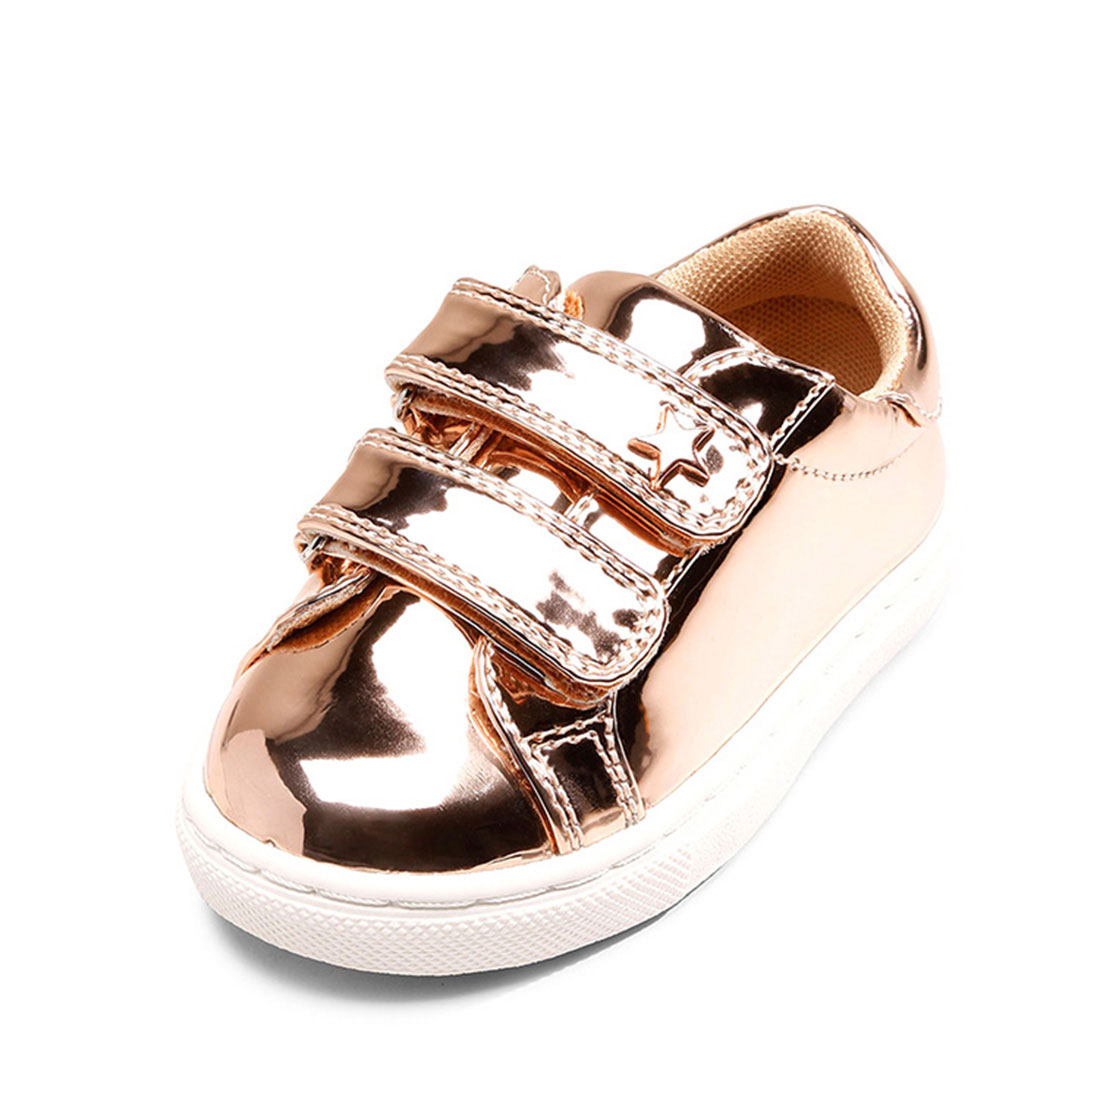 Patent leather gold color flat round toe sport little star childrens sneakers